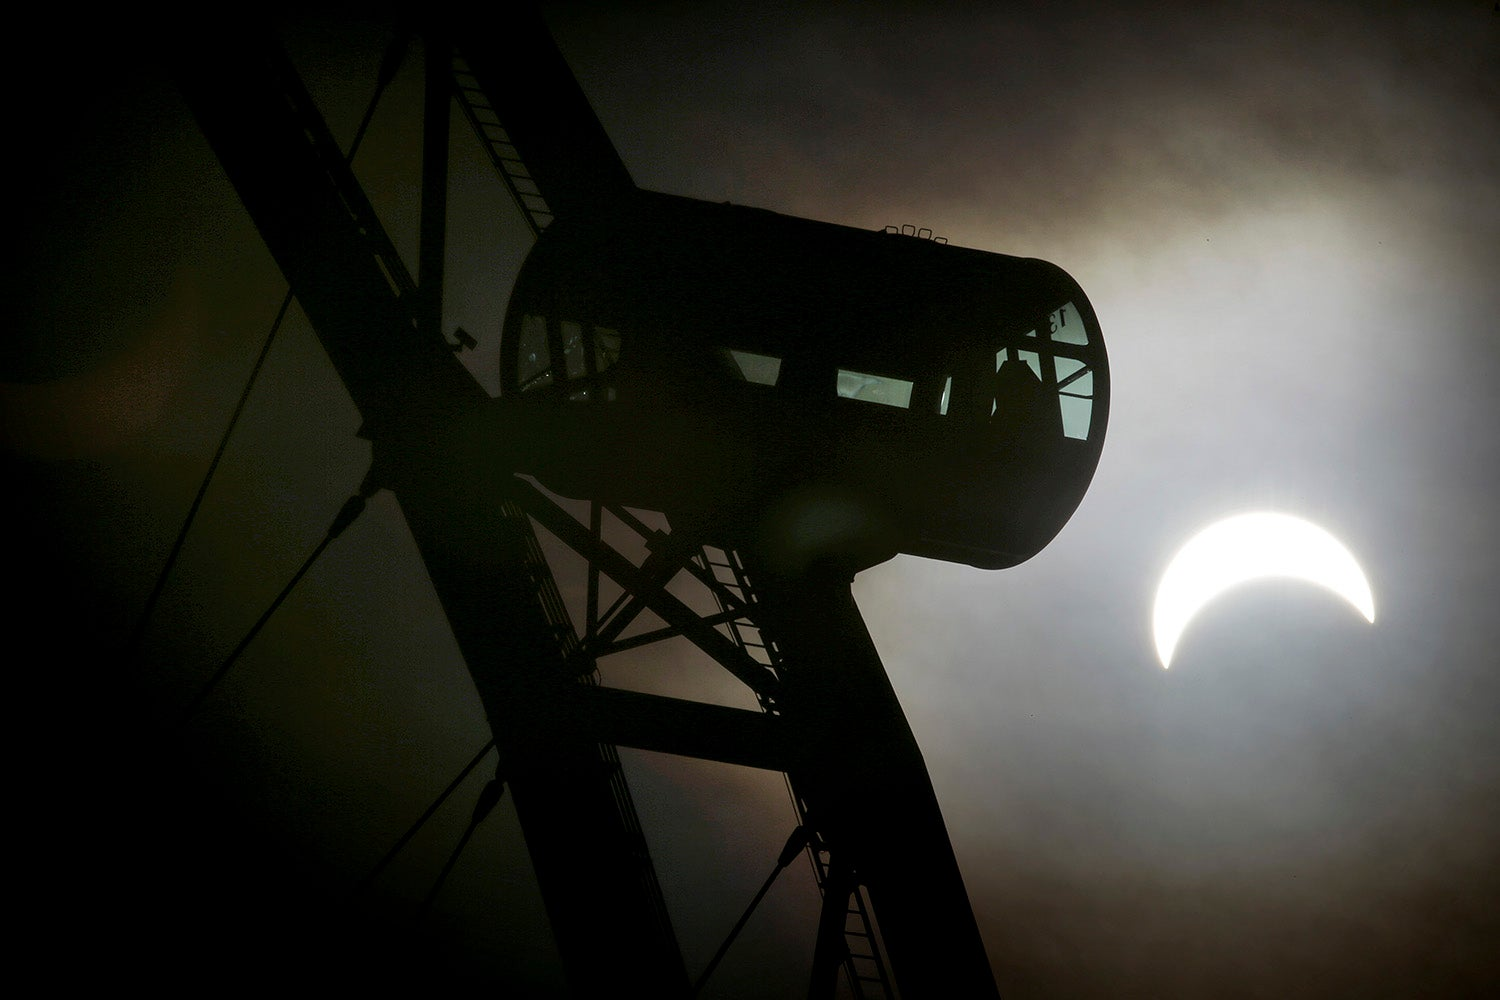 Last Night's Solar Eclipse Looks Stunning in These Captivating Images